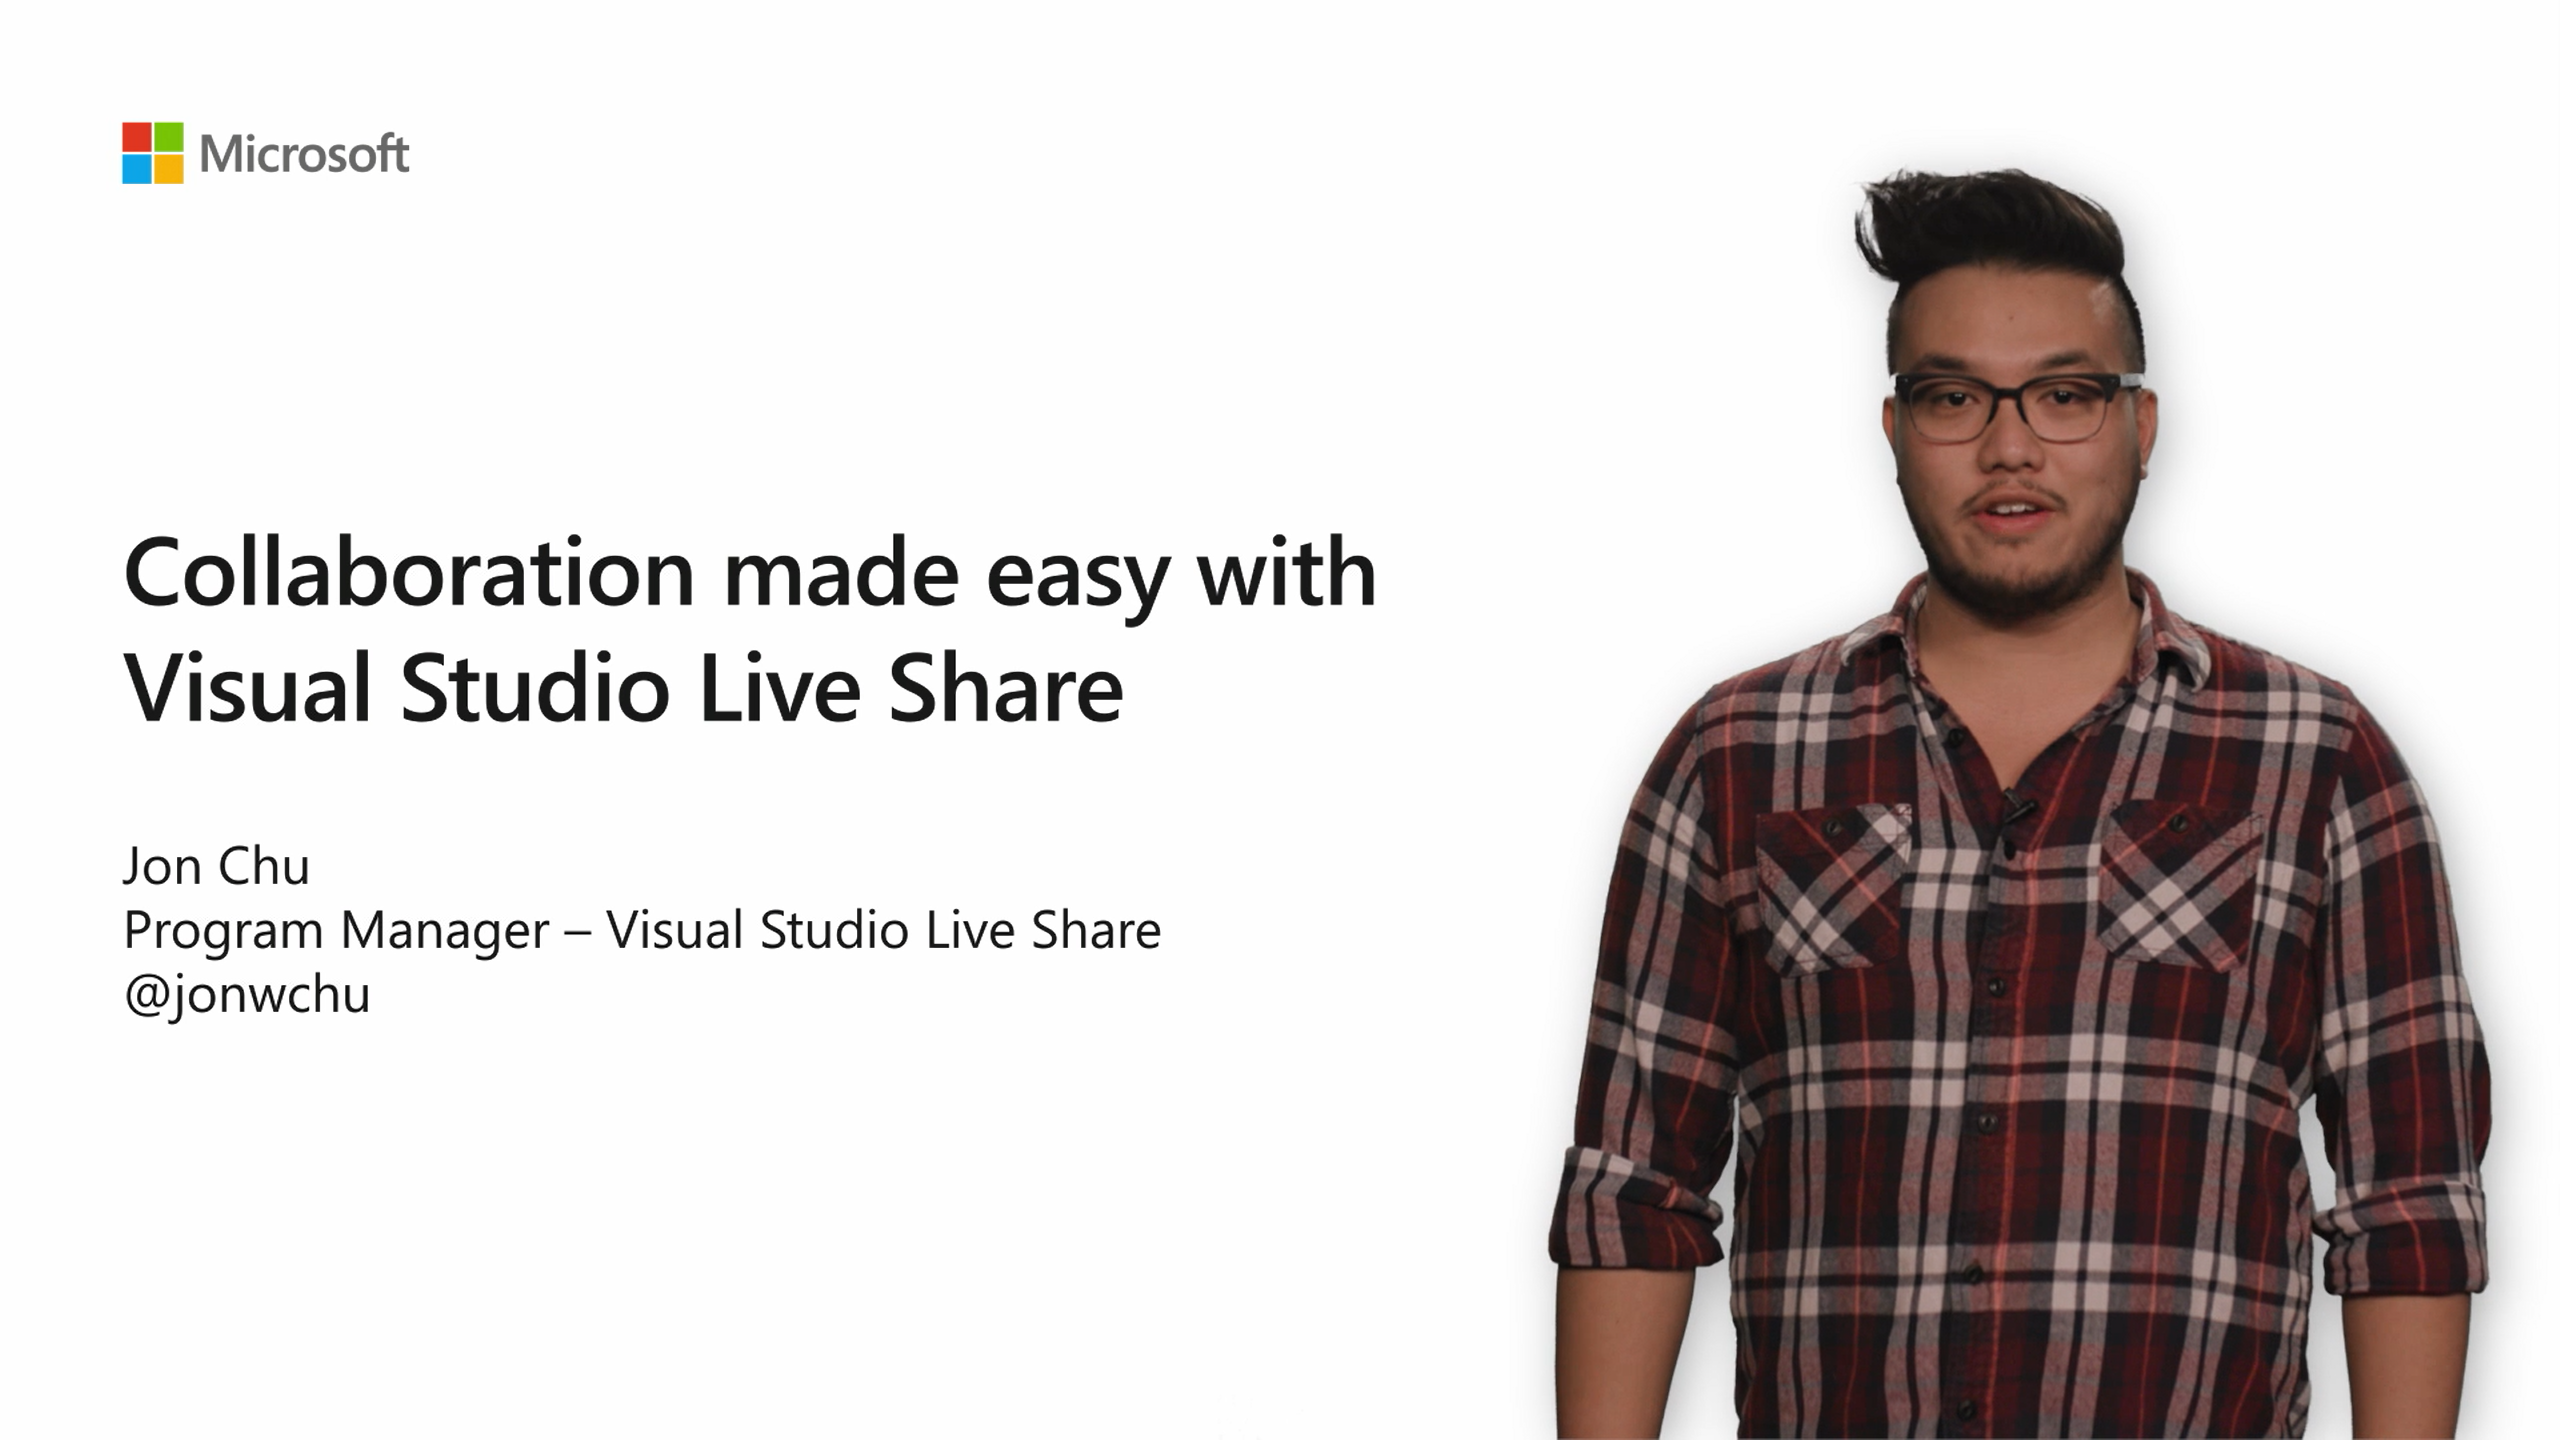 Collaboration made easy with Visual Studio Live Share